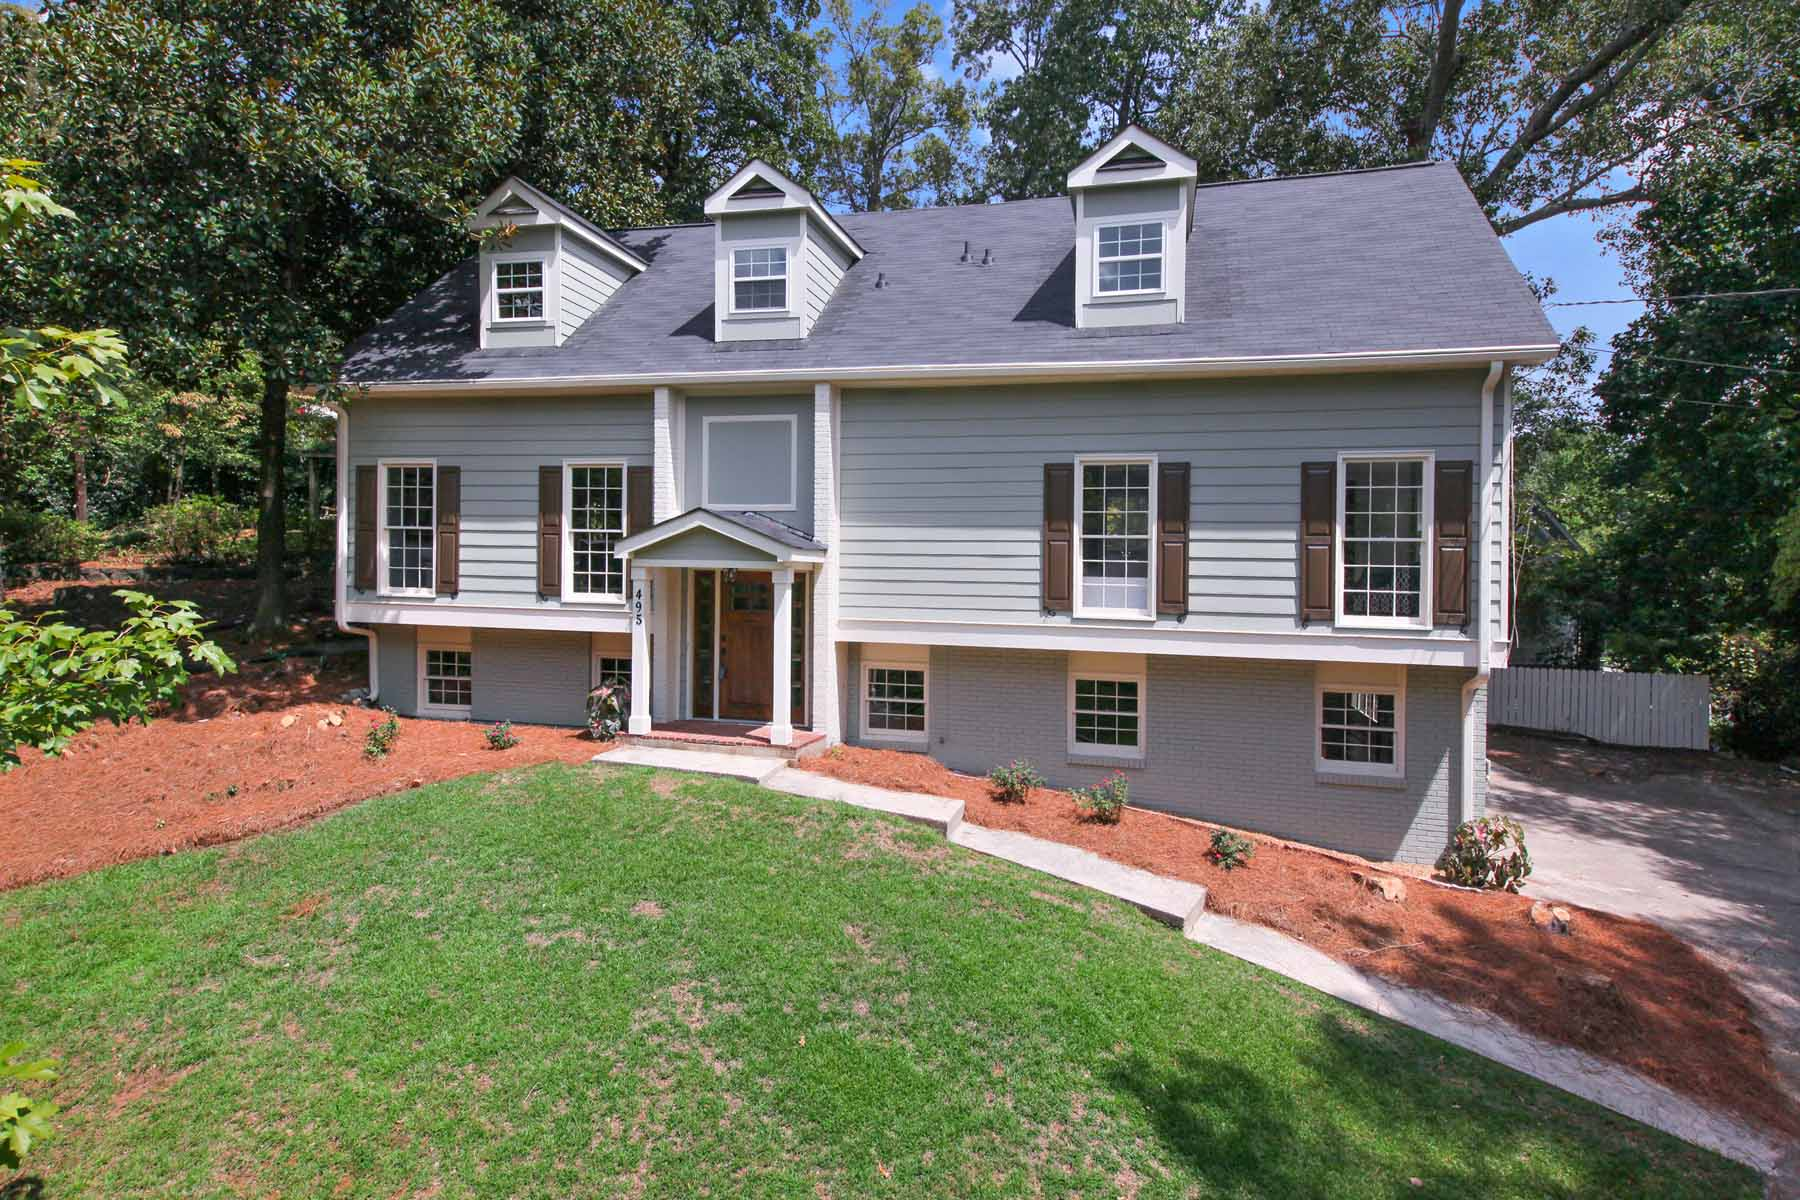 Single Family Home for Active at Gorgeous Renovation in Sarah Smith Elementary 495 Chateaugay Lane Atlanta, Georgia 30342 United States